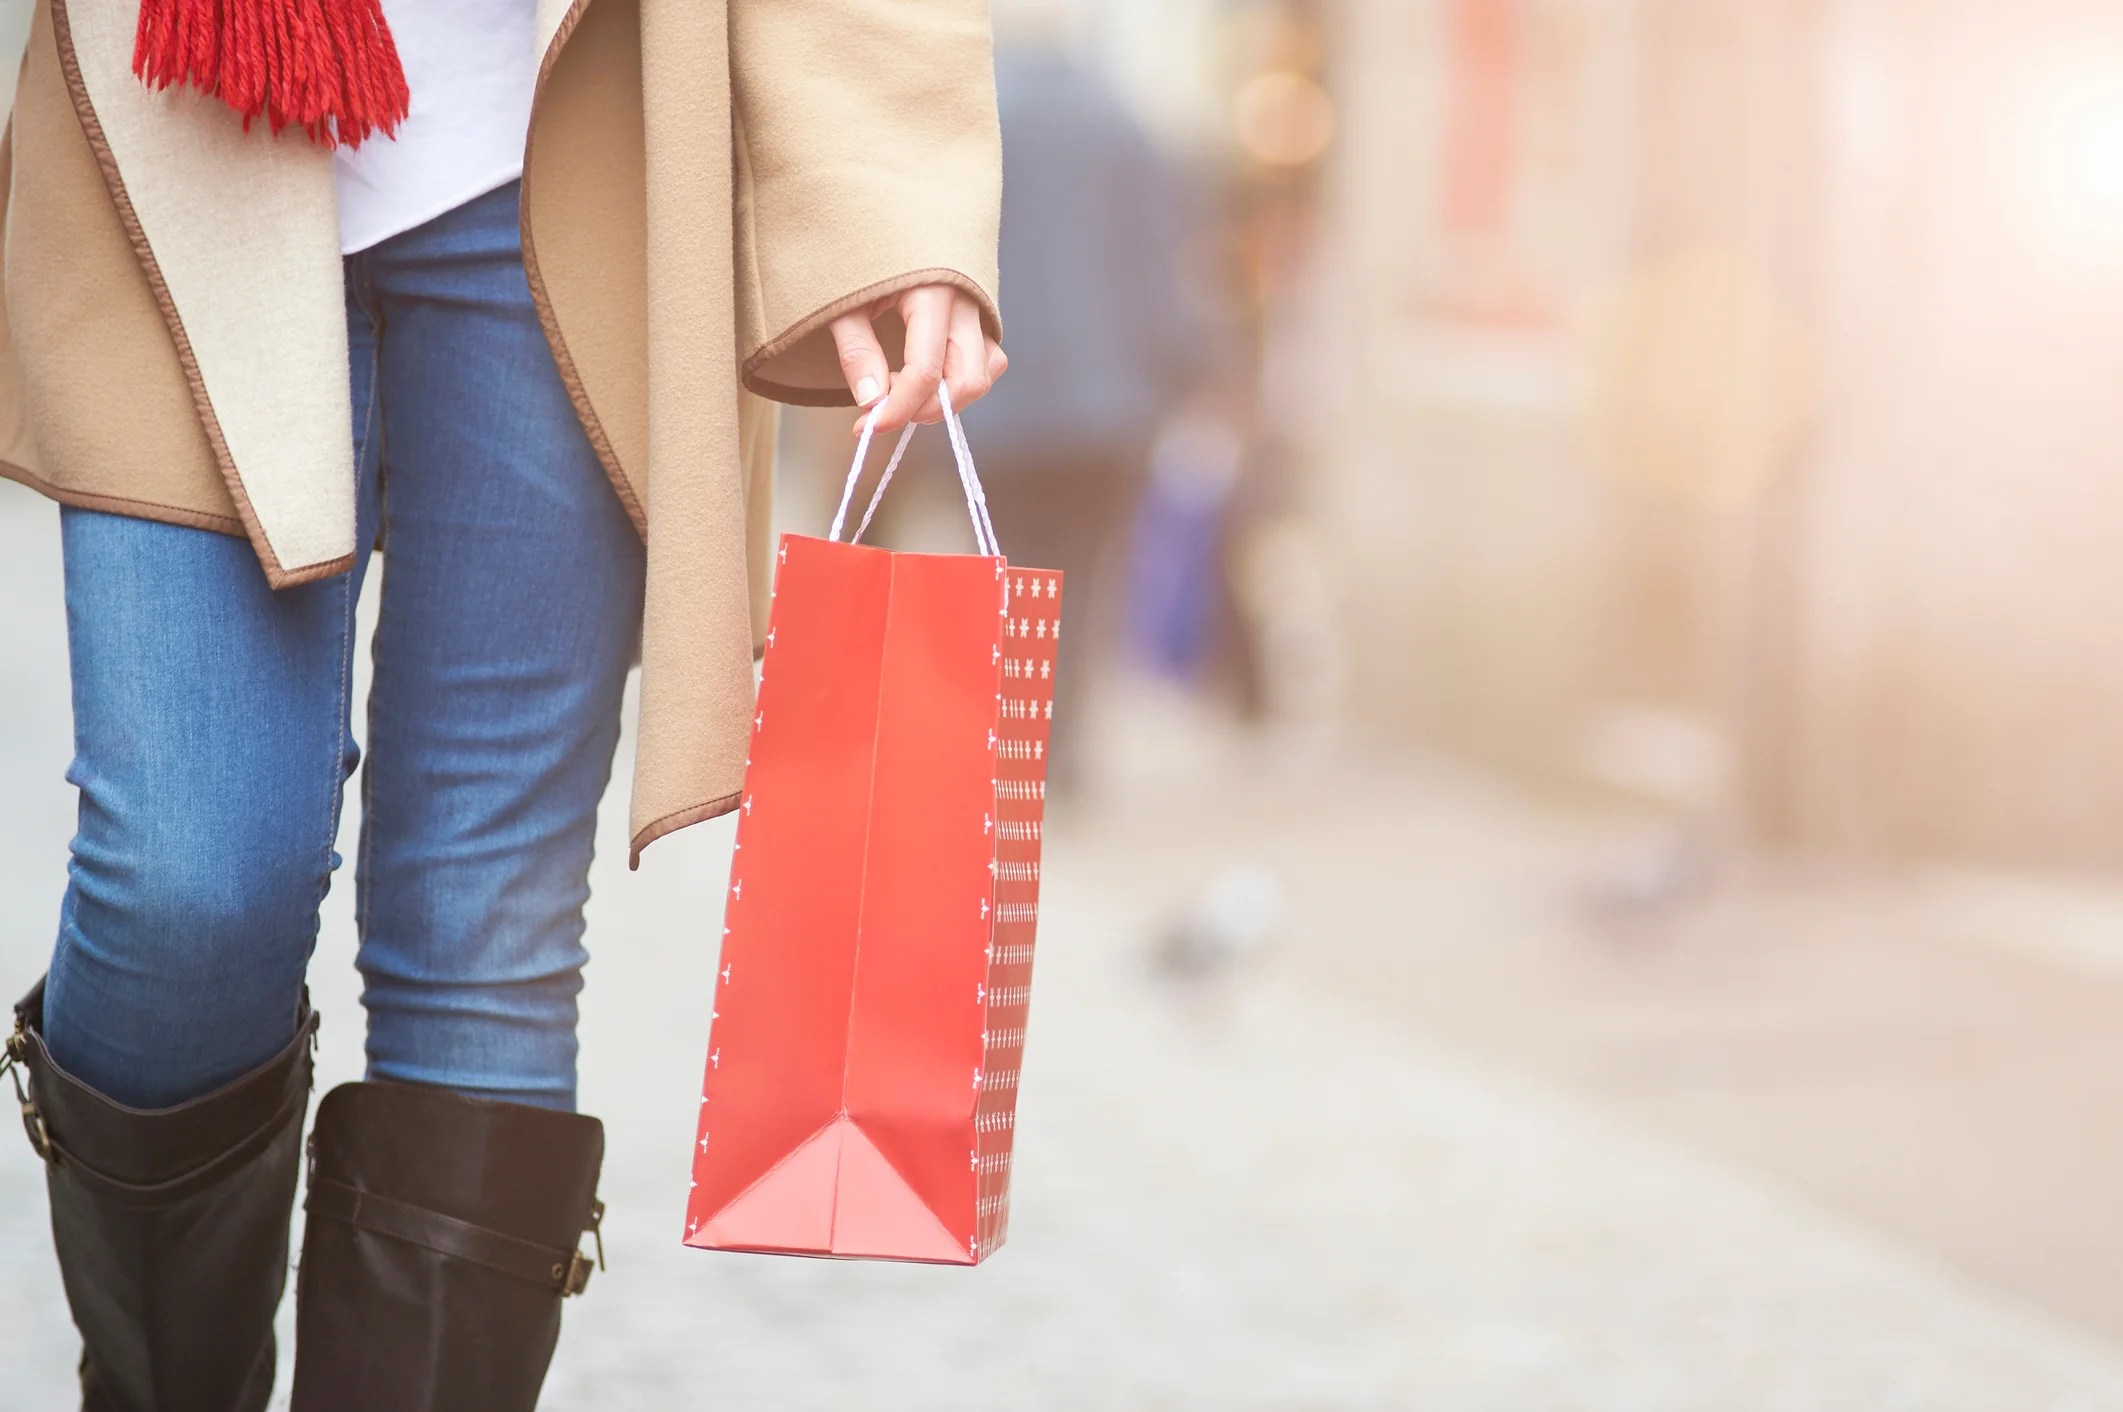 A woman carries a Christmas gift.